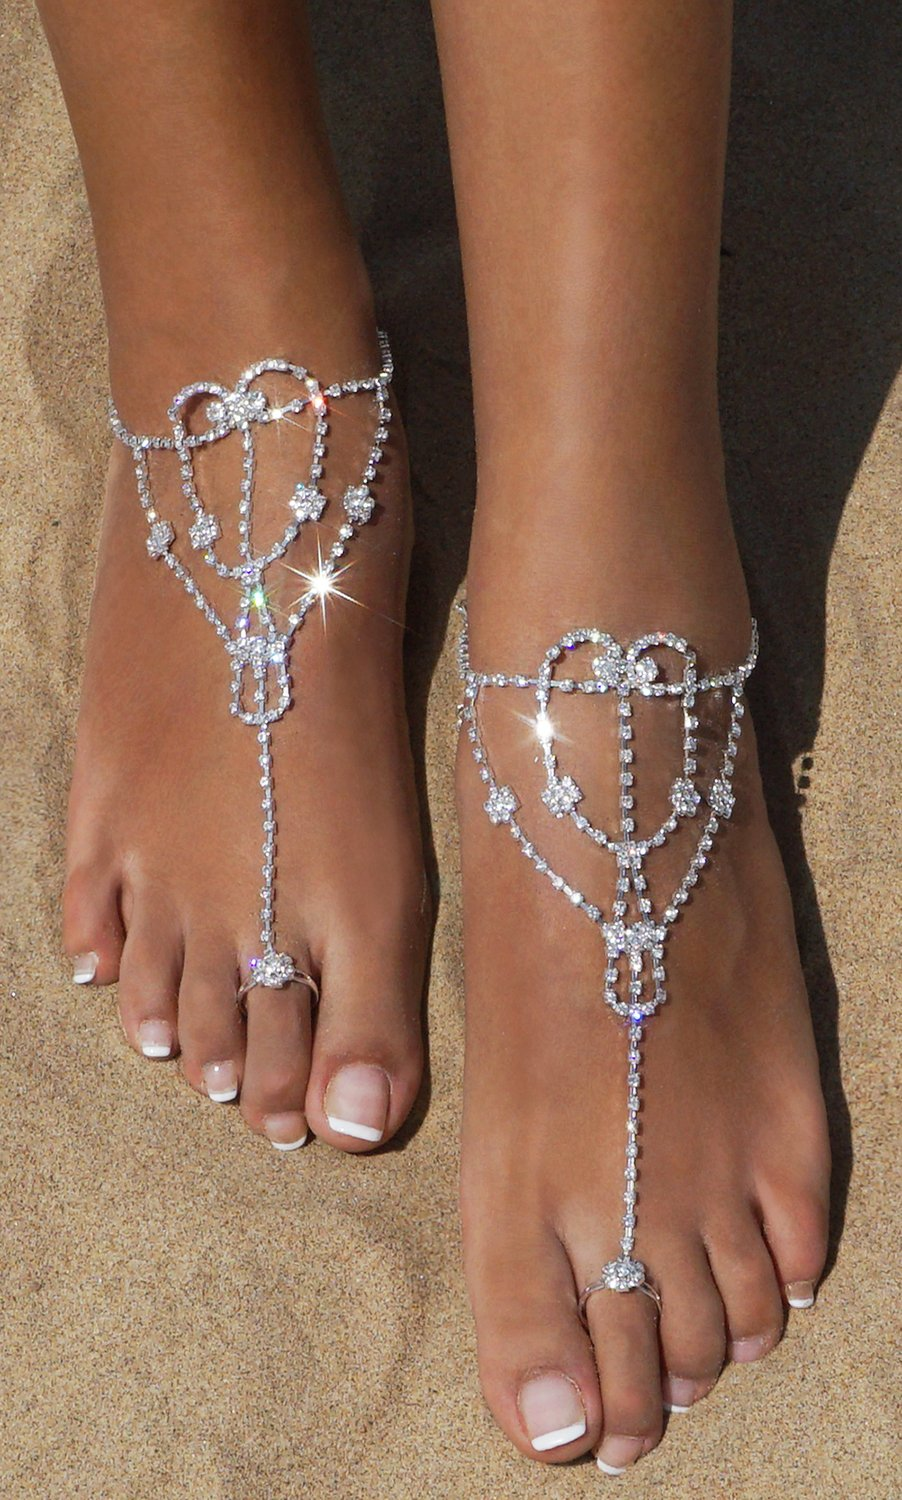 2 Pcs Barefoot Sandals with Rhinestone Toe Ring Beach Wedding Foot Jewelry Anklet Chain,Silver_Style 5 by Bellady (Image #3)